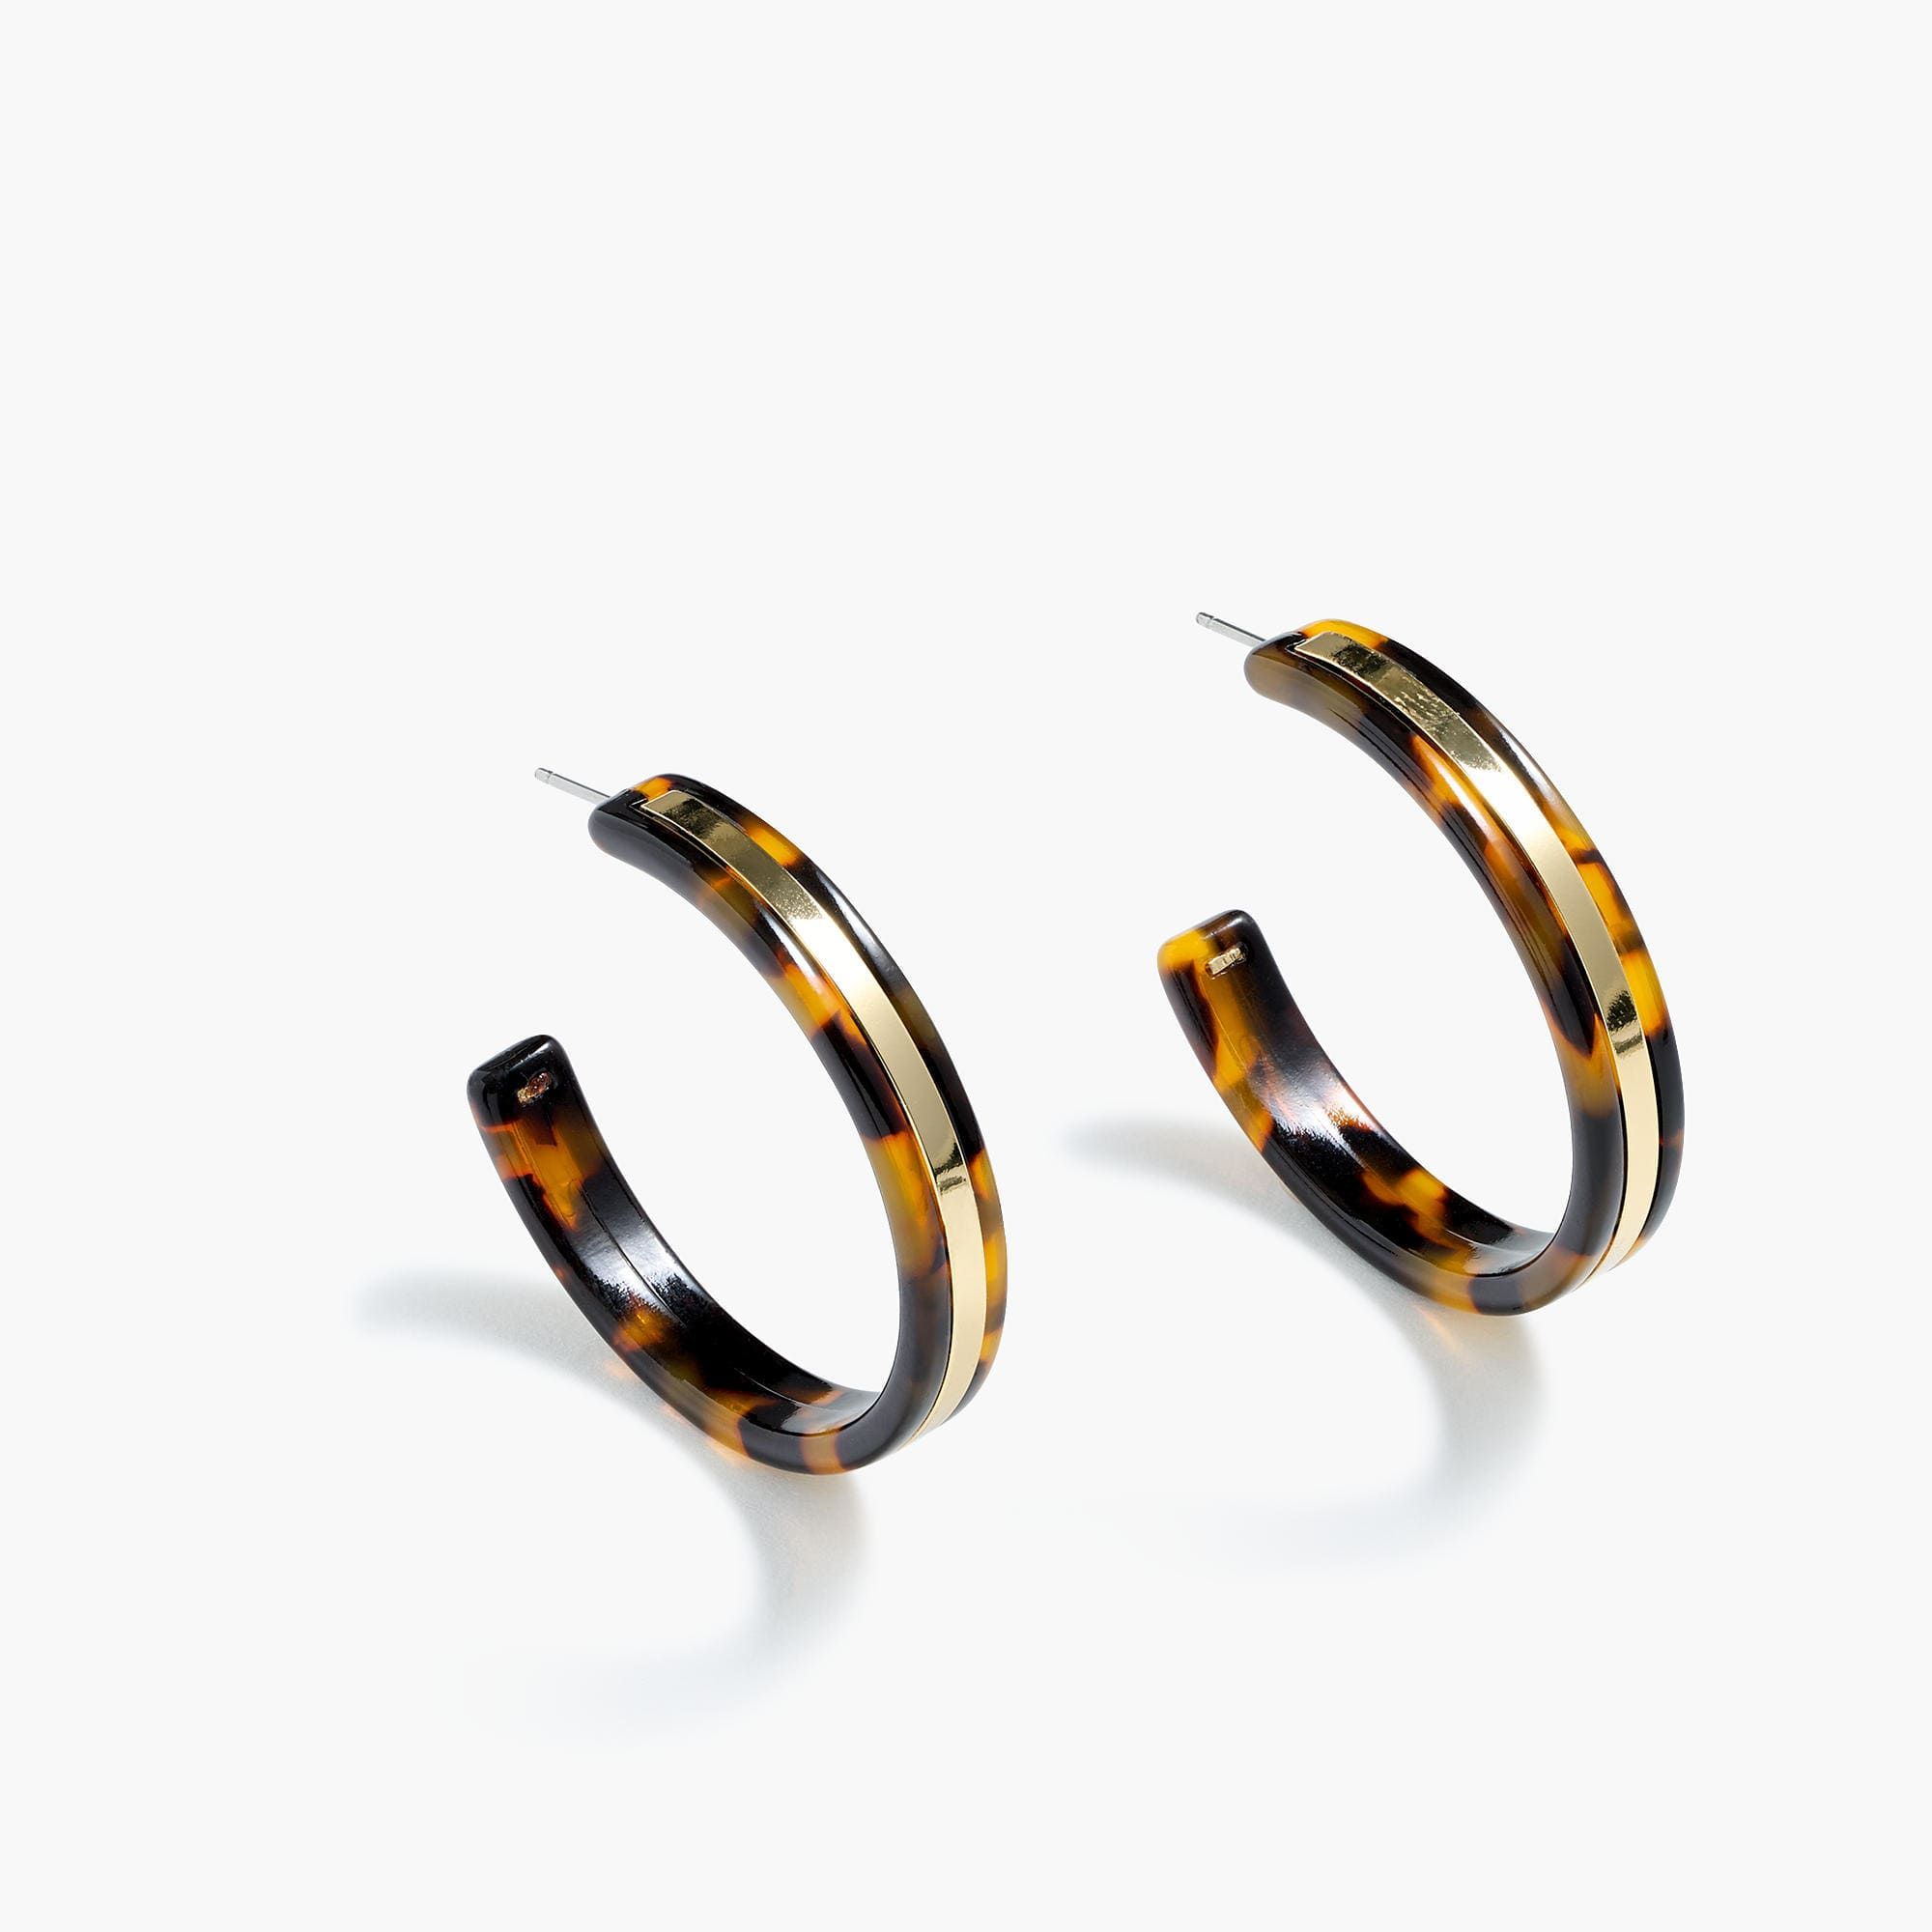 hoops ash garmentory in shop blonde machete grande sale le earrings tortoise